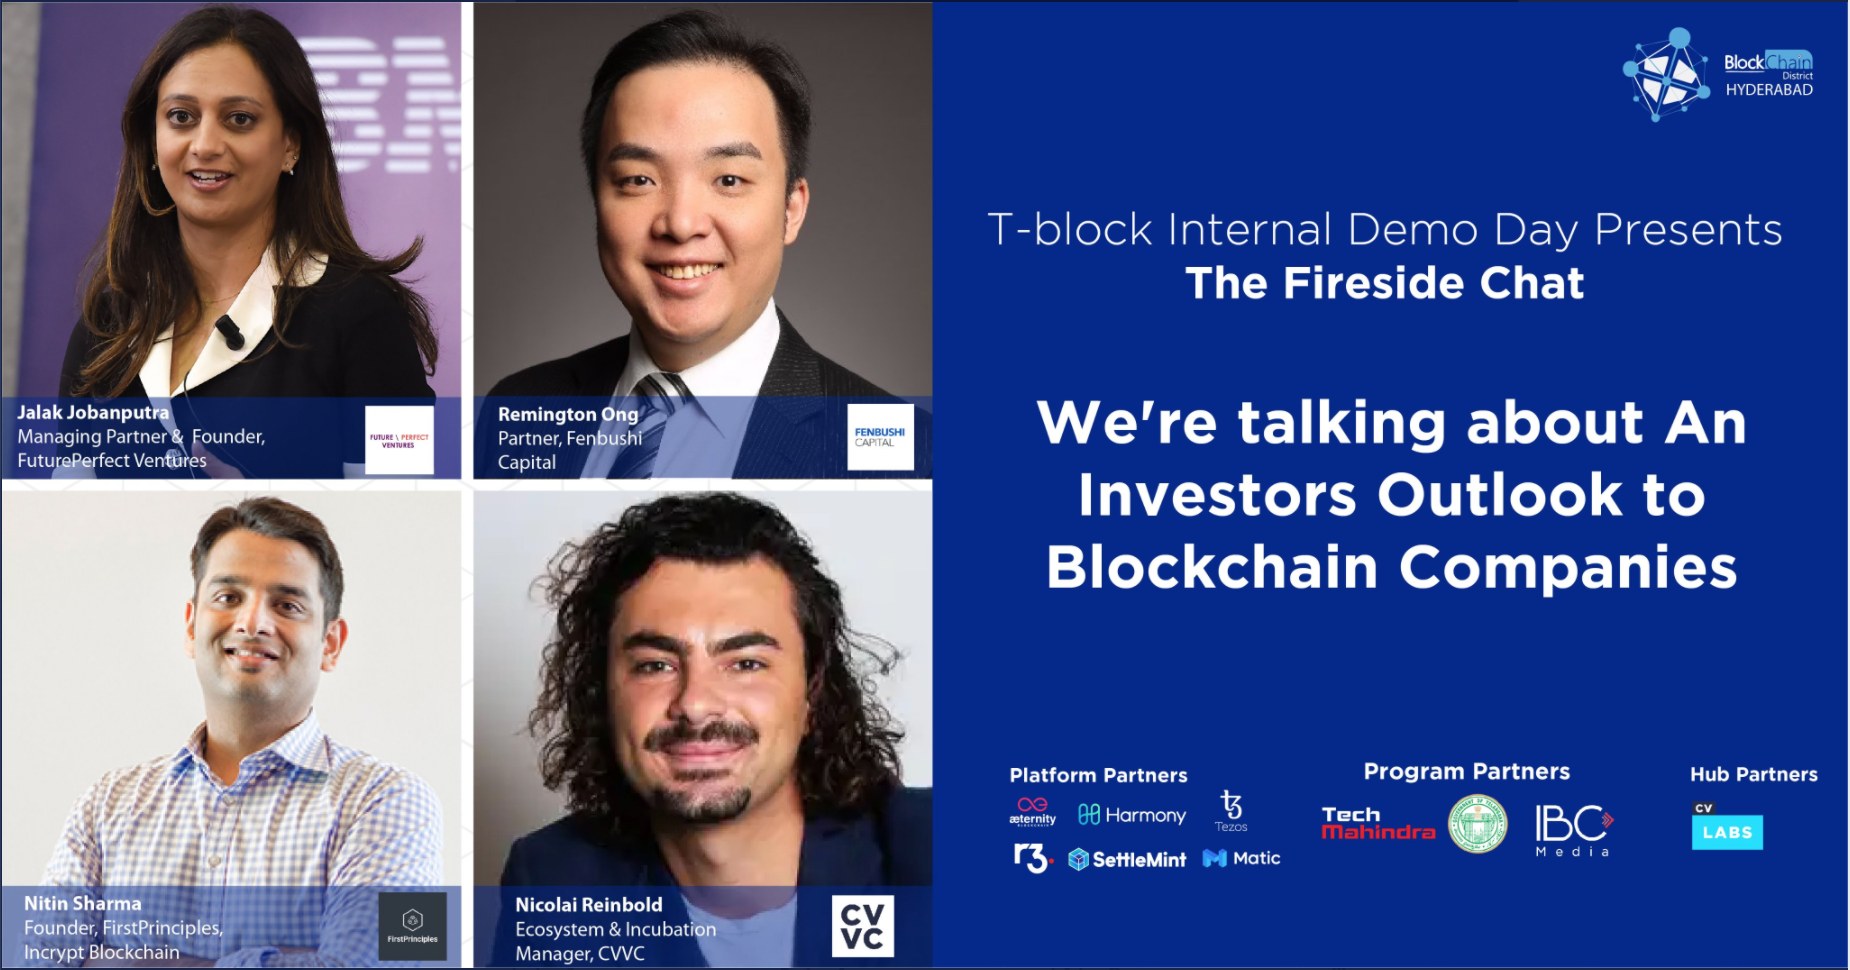 July 2020 T-Block Internal Demo Day: Fireside Chat July 25